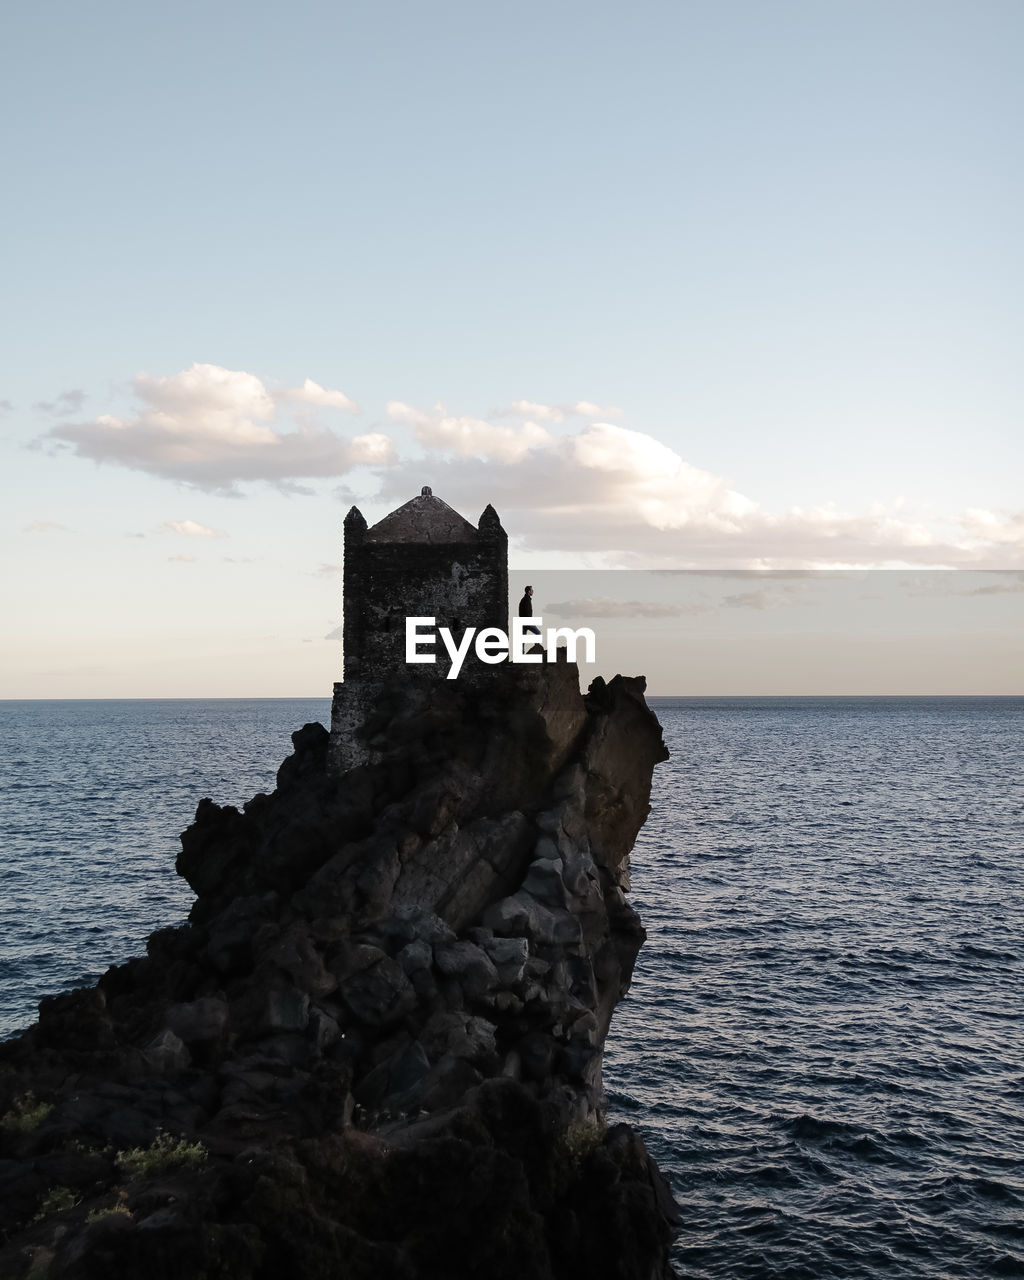 sea, water, sky, architecture, scenics - nature, built structure, horizon, horizon over water, rock, beauty in nature, nature, no people, building exterior, cloud - sky, building, rock - object, solid, history, tranquility, outdoors